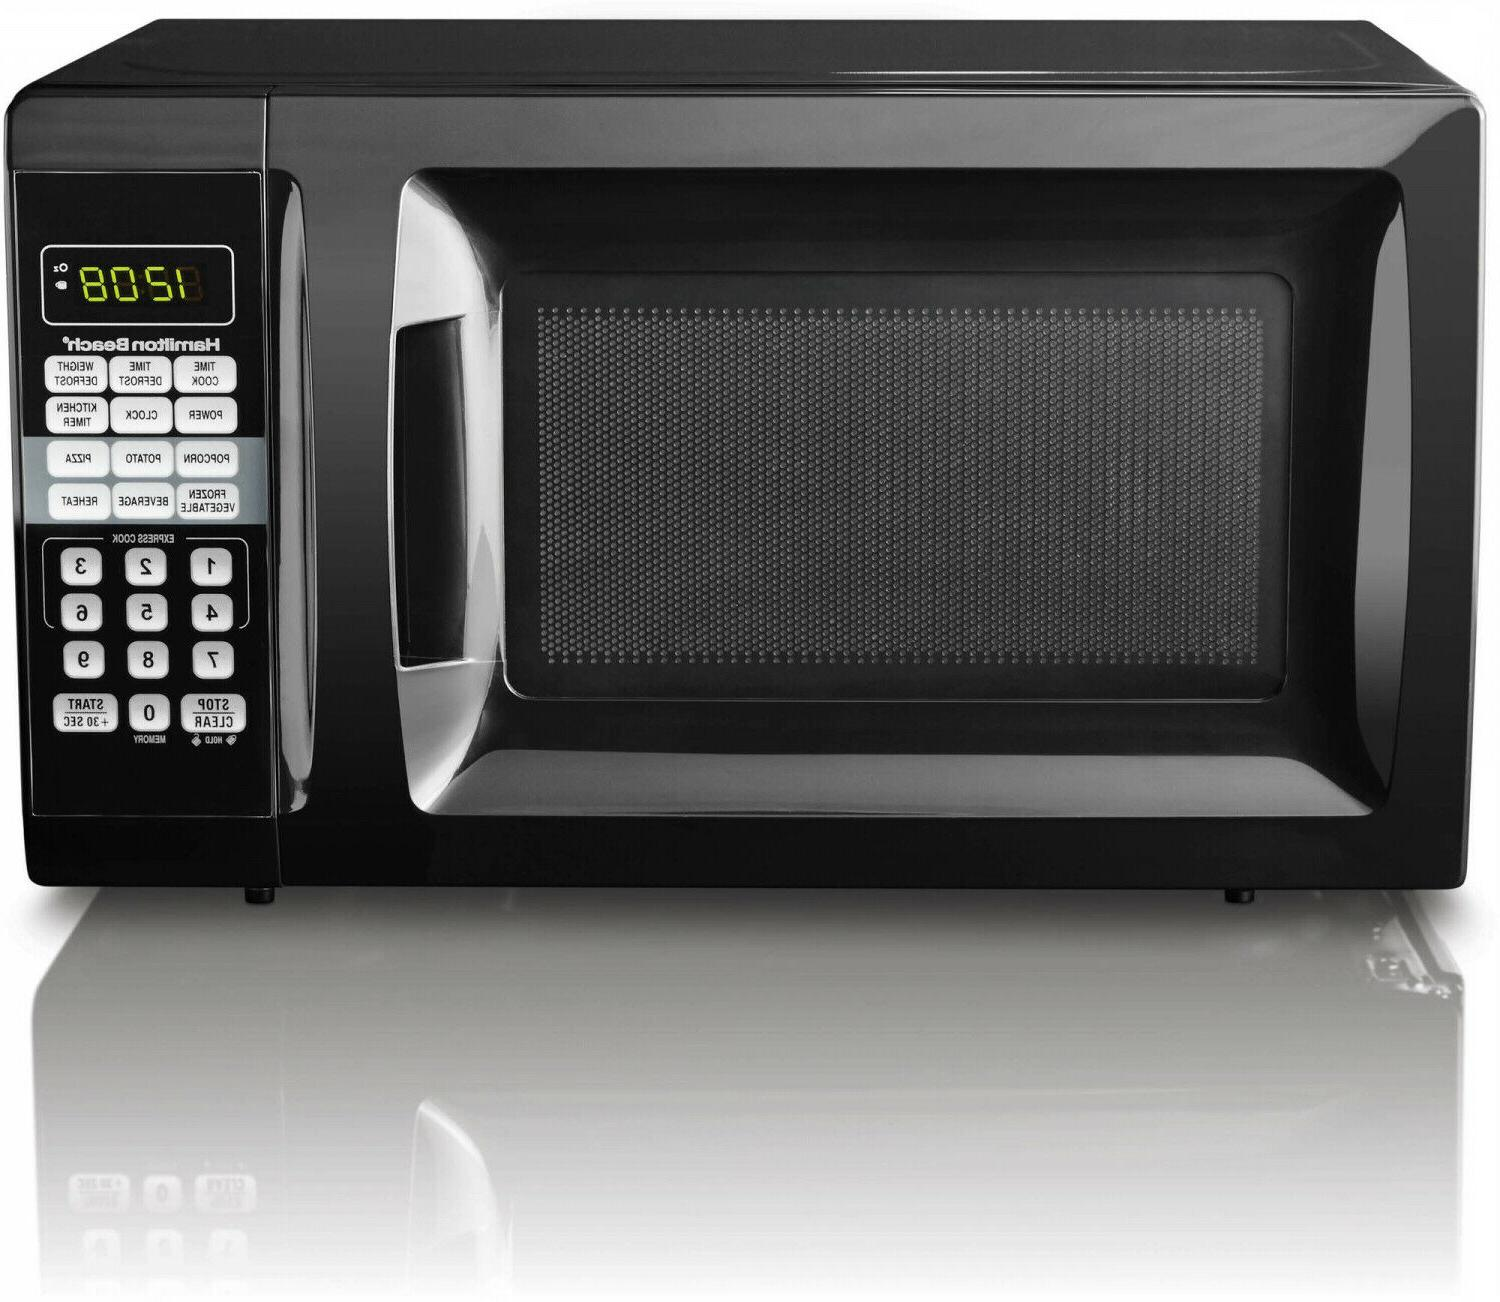 0 7 cu ft microwave oven child